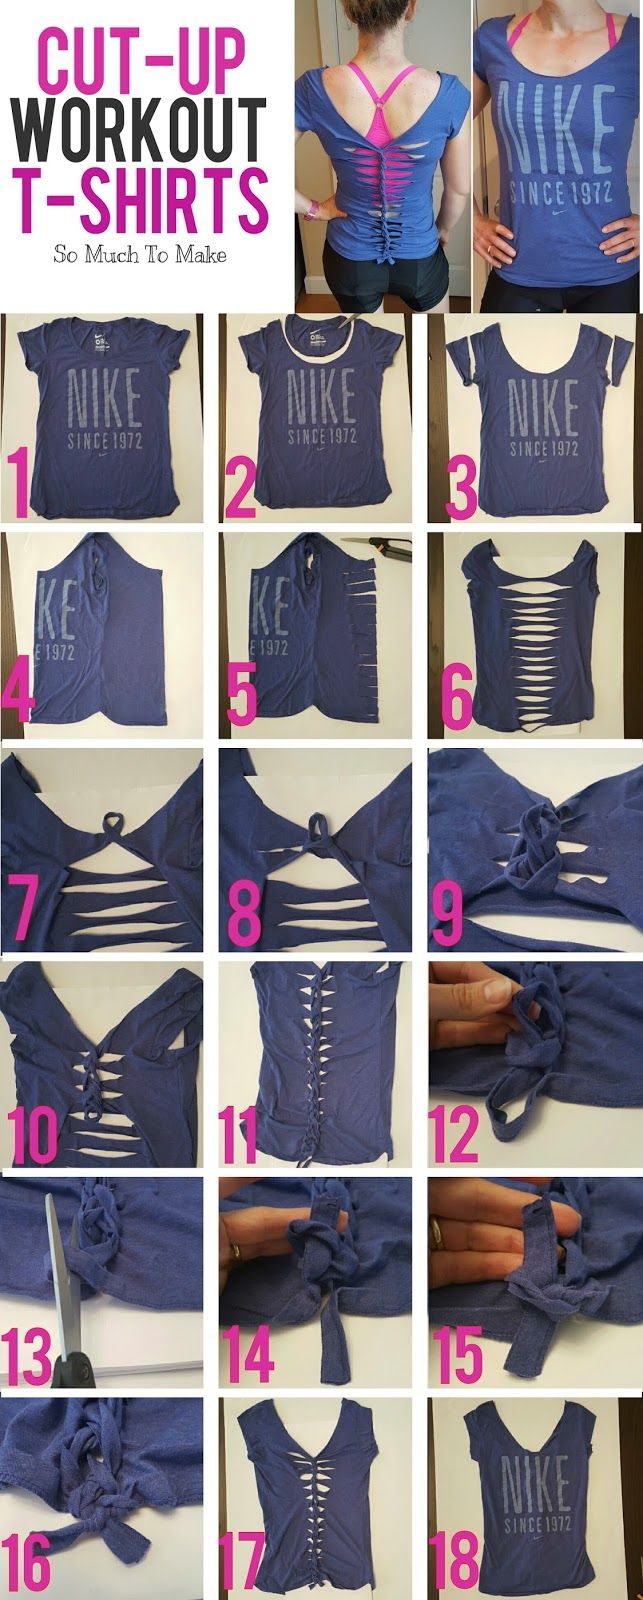 Cut-Up Workout T-Shirt Tutorial   Shirt tutorial, Repurposed and ...